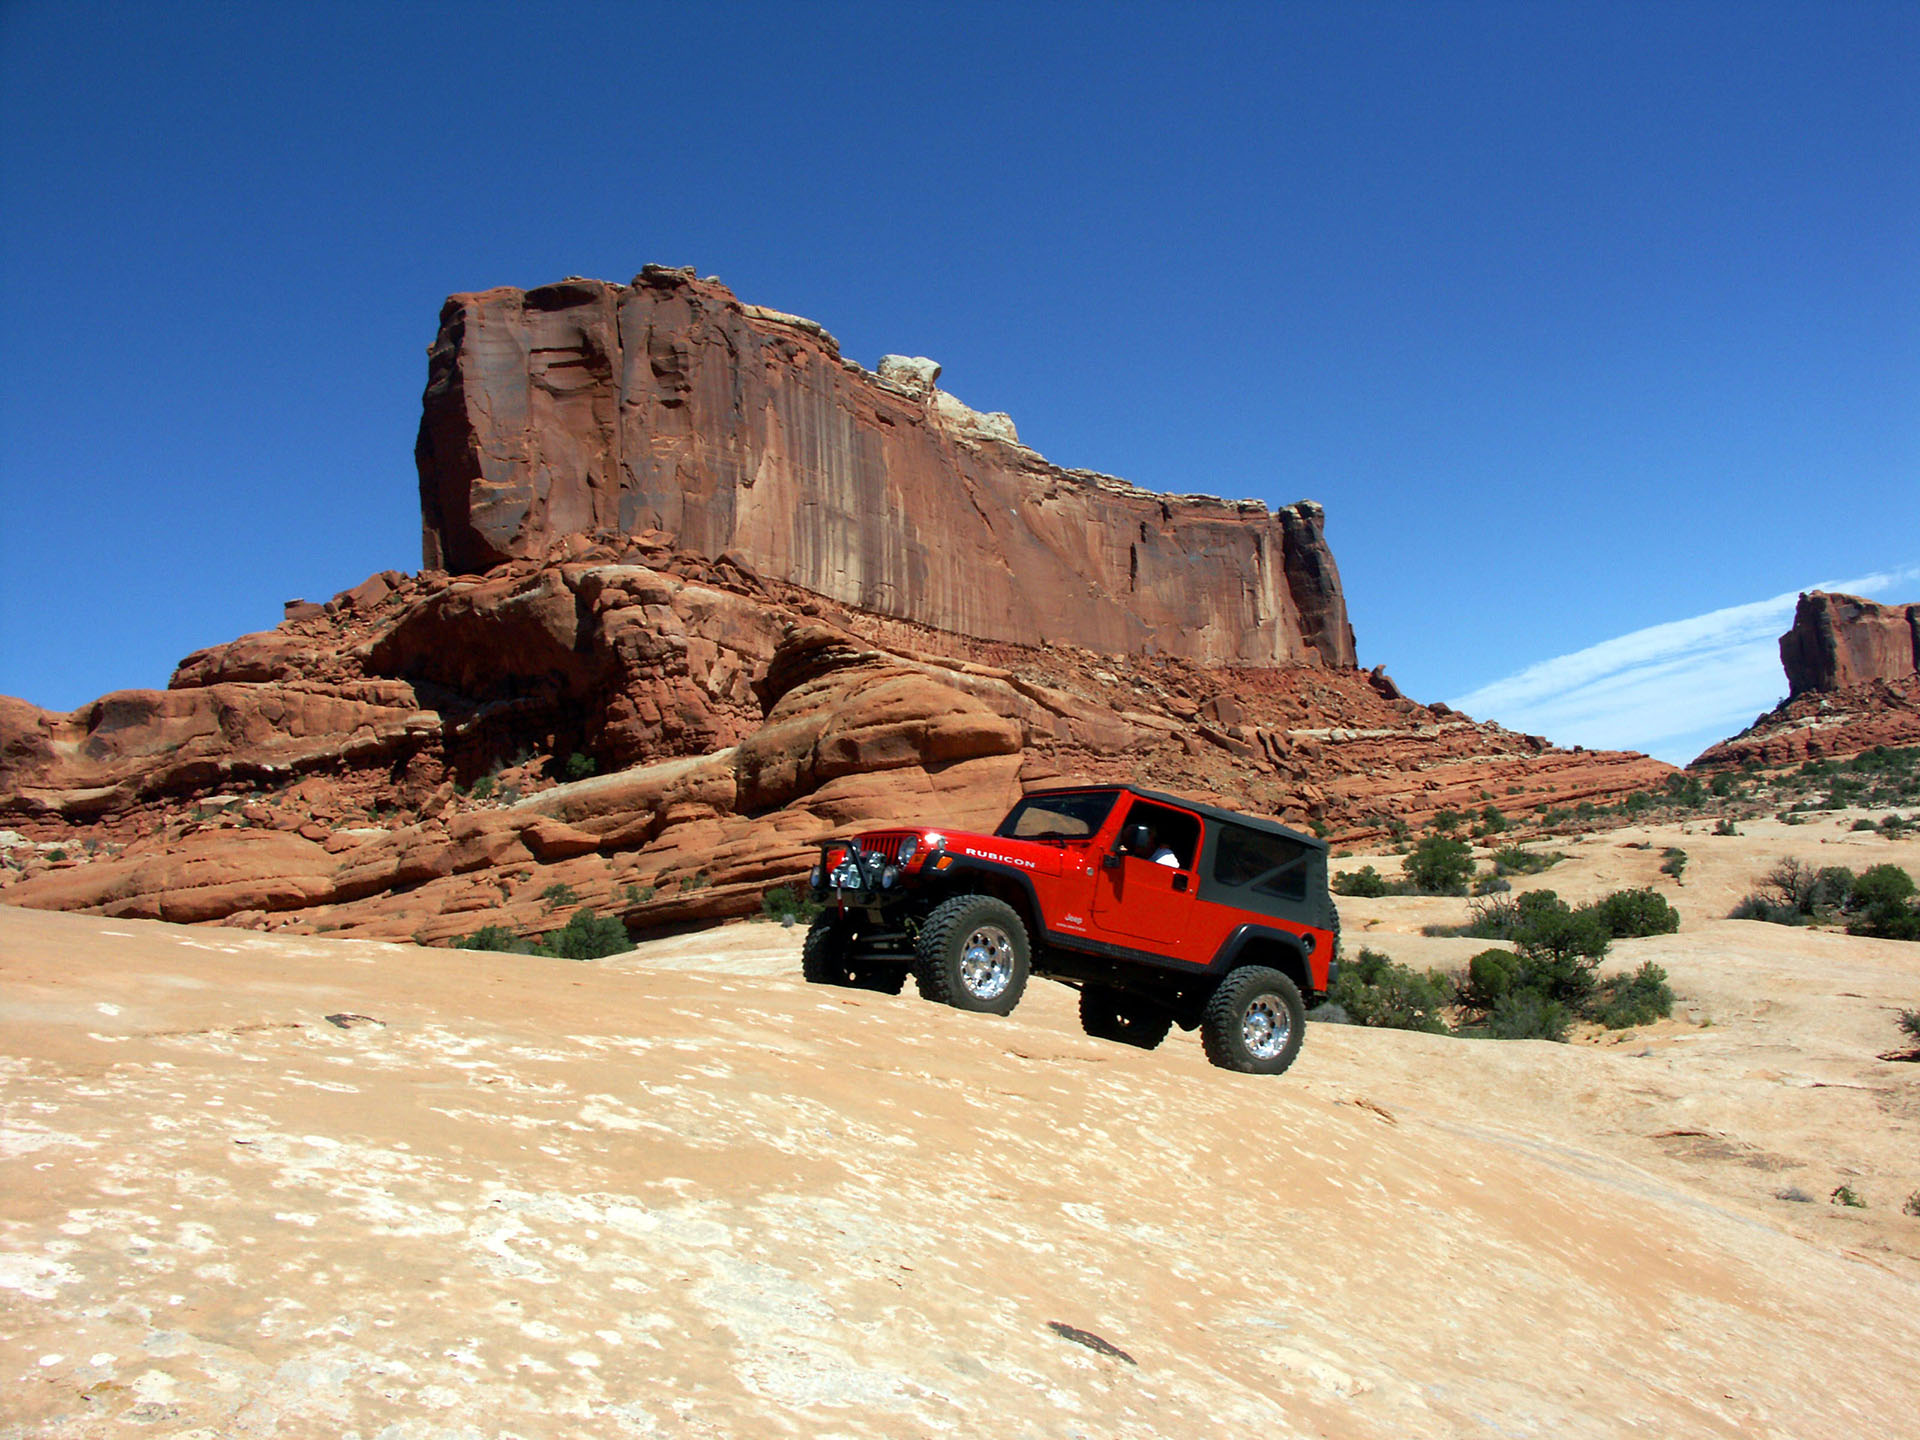 moab 4 wheeling trails guide discover moab utah